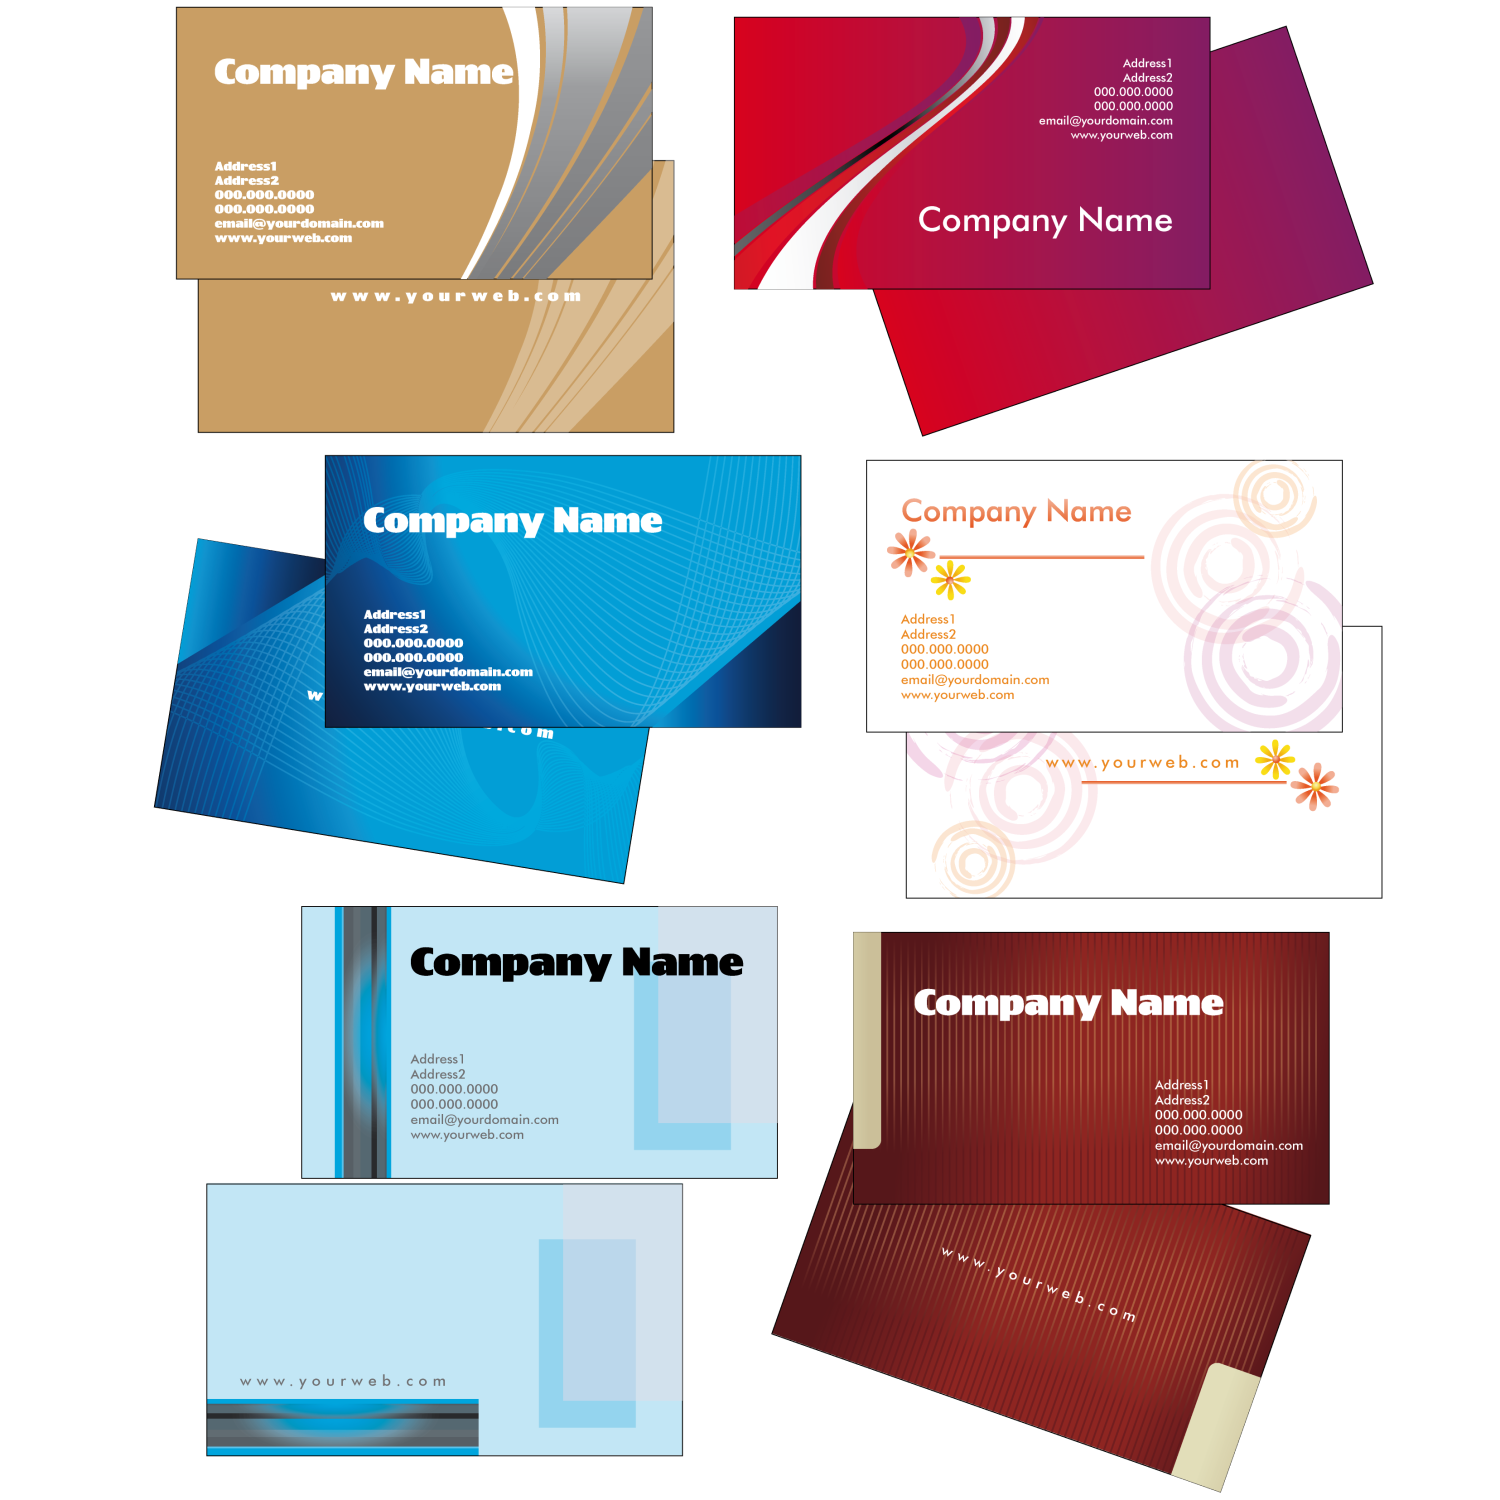 Creative Business Card Templates u2013 2 - PNG For Business Use